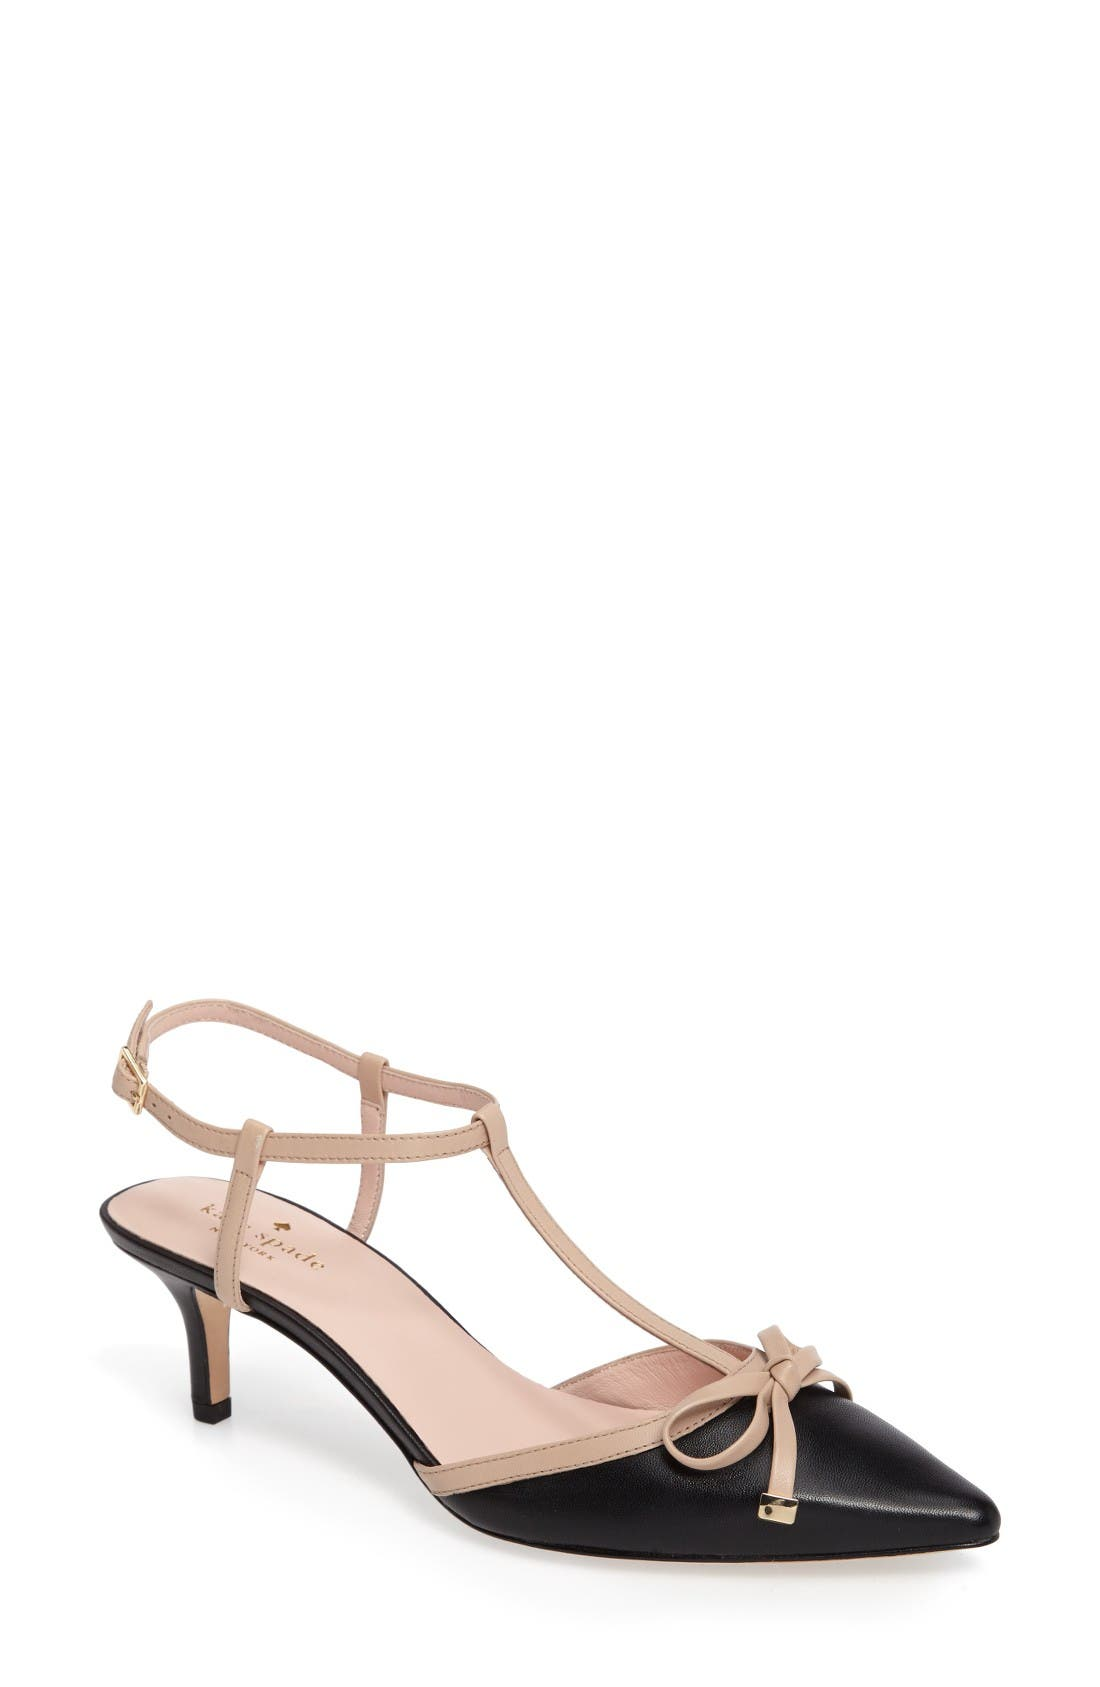 kate spade new york pomona pointy toe pump (Women)